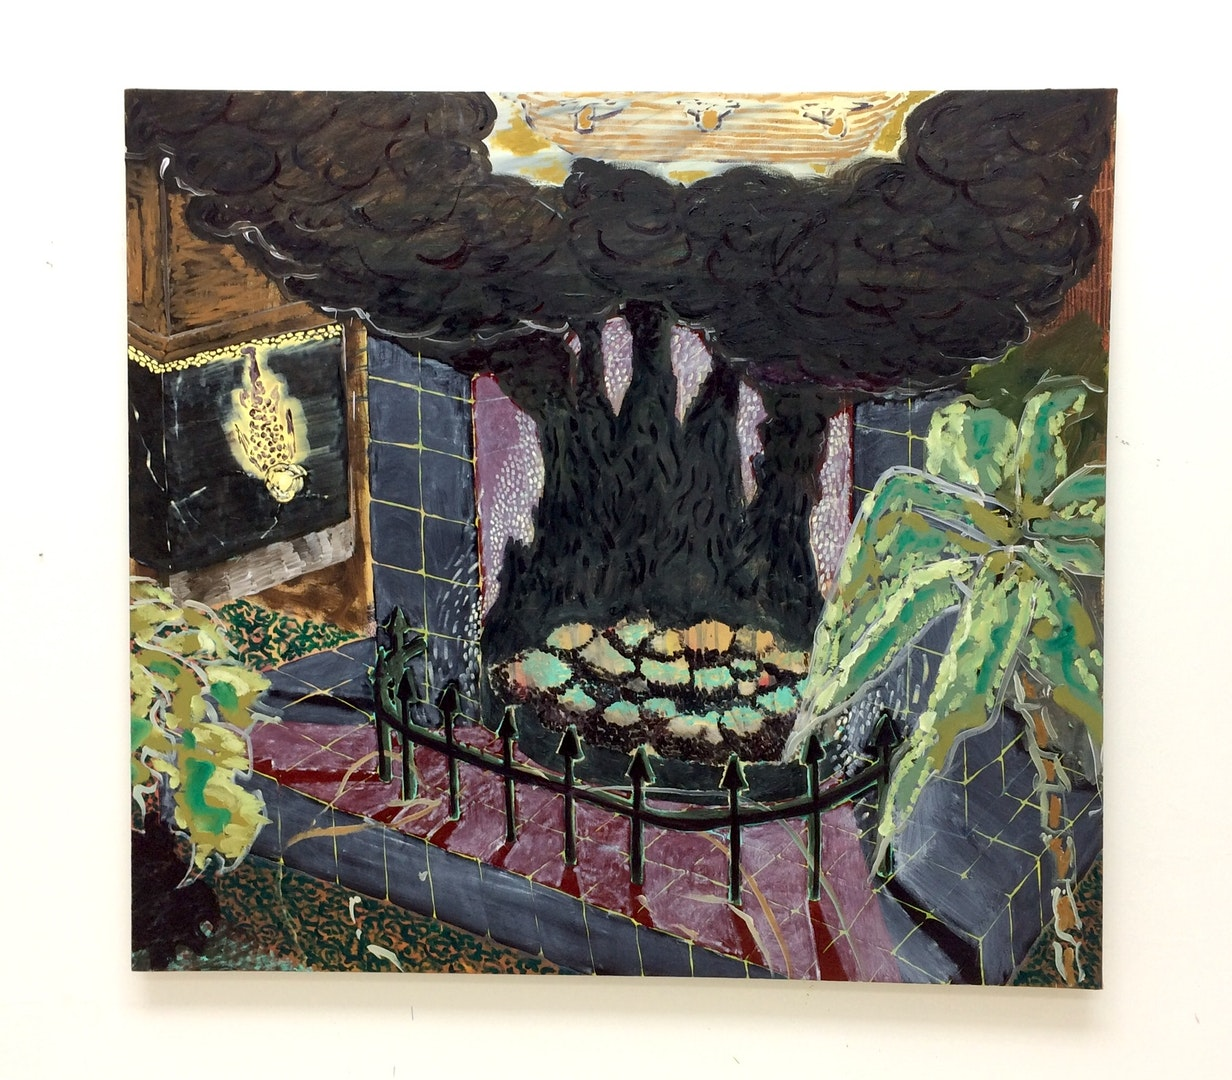 'Black Fireplace', Max Gimson, Oil on canvas, 145 x 135 cm